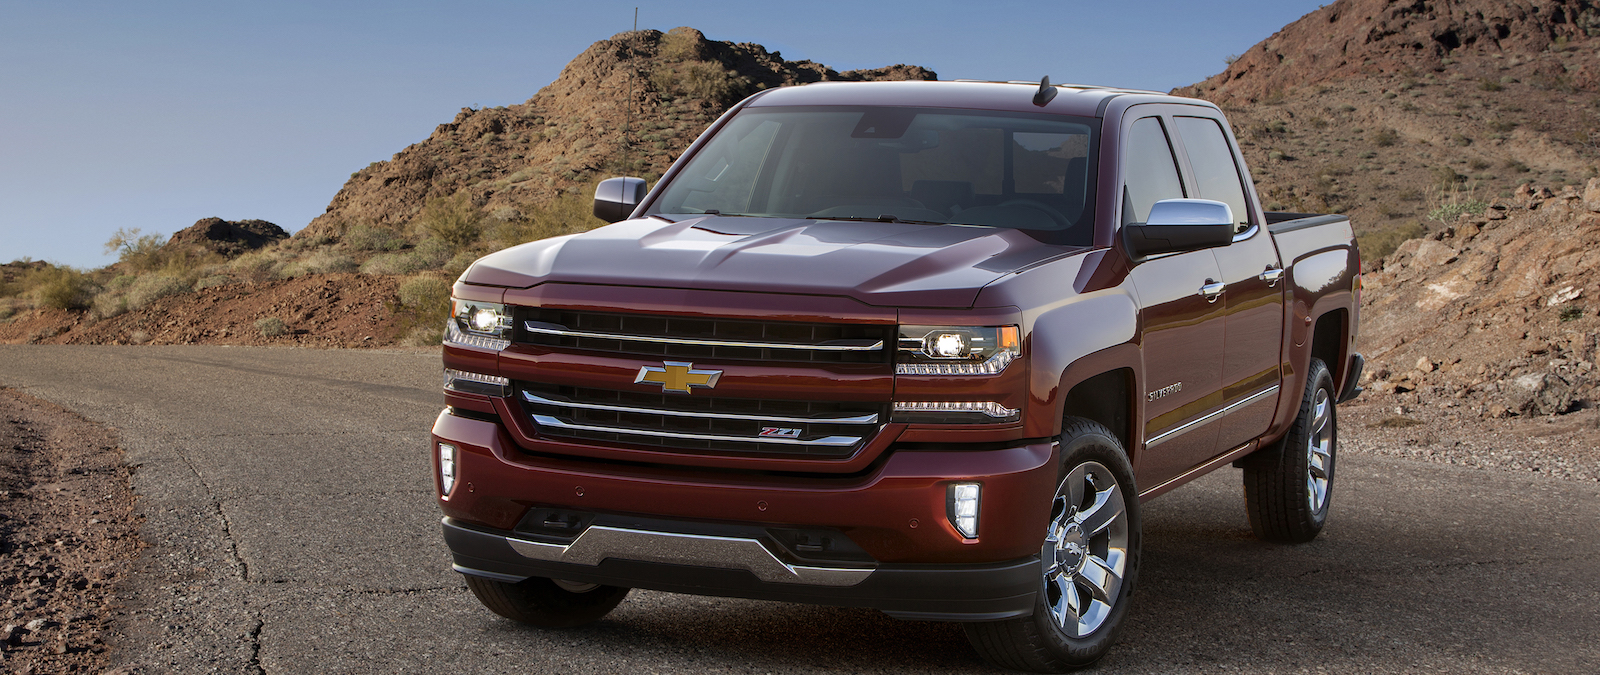 A red 2016 Chevy Silverado 1500 LTZ Z71 is parked on a desert road.